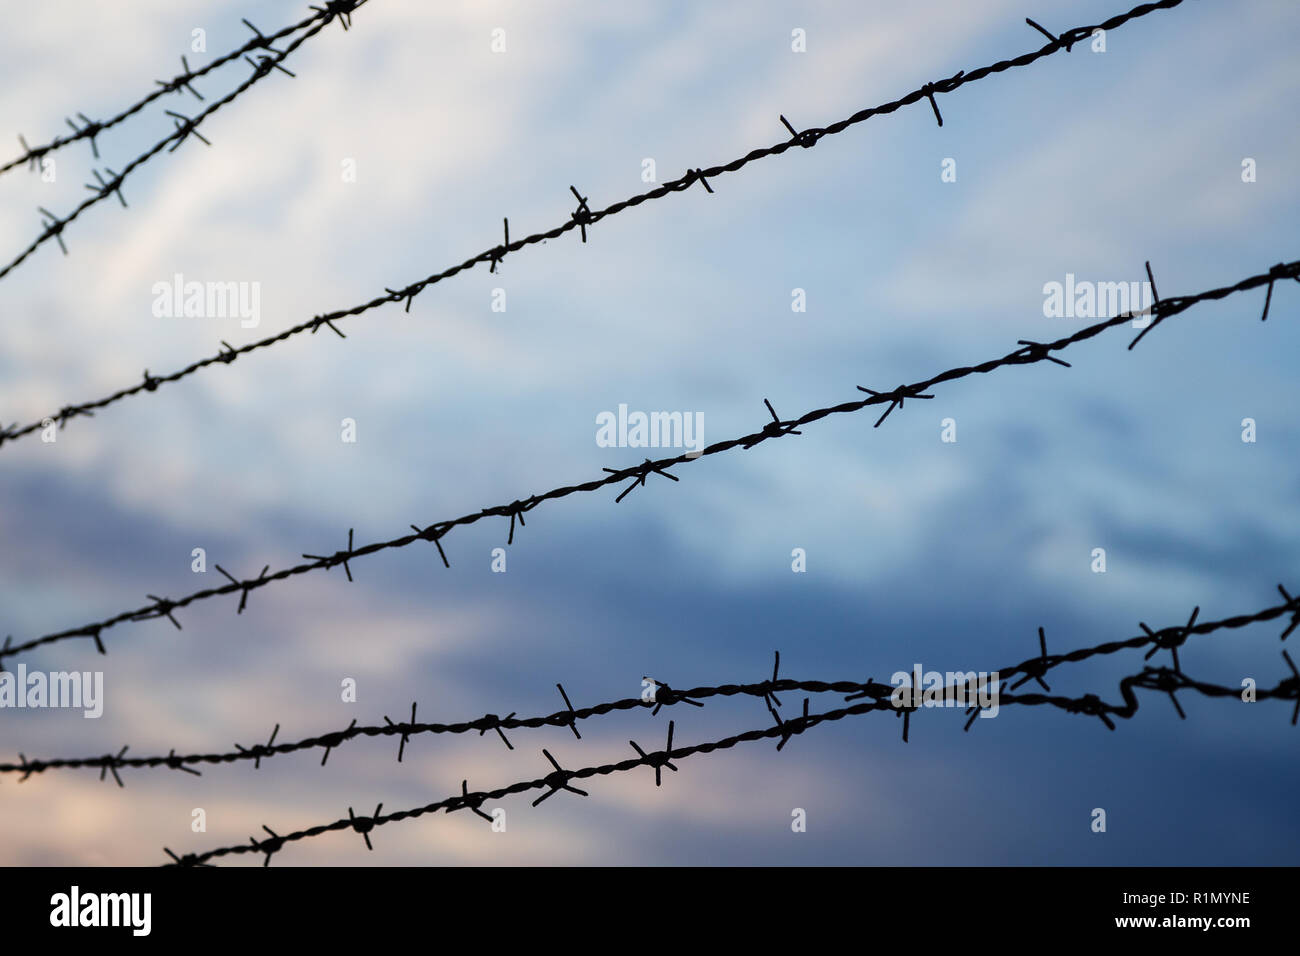 Silhouette of barbed wire fence against blurry cloudy sky in the evening. Focused on the foreground. - Stock Image